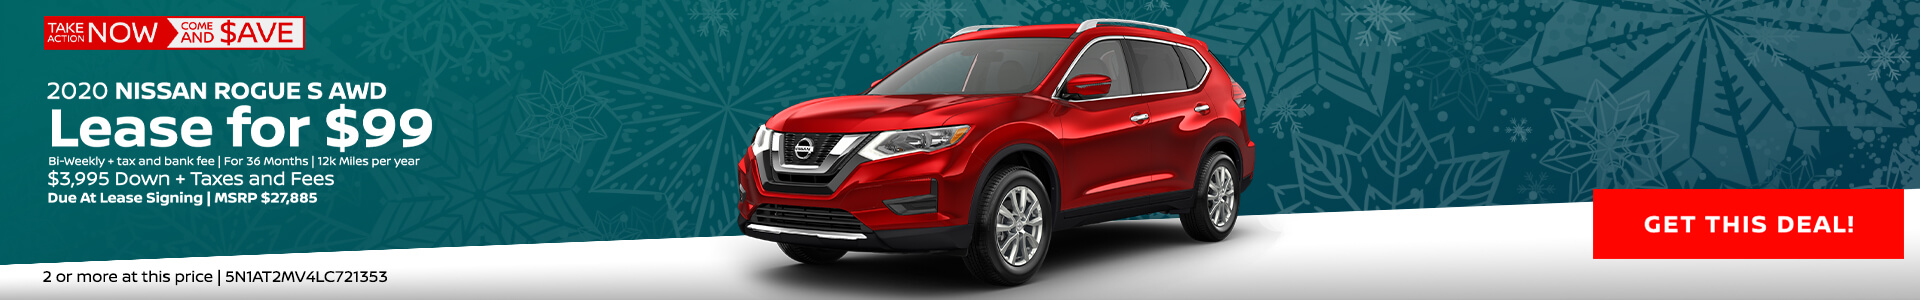 Nissan Rogue $99 Lease